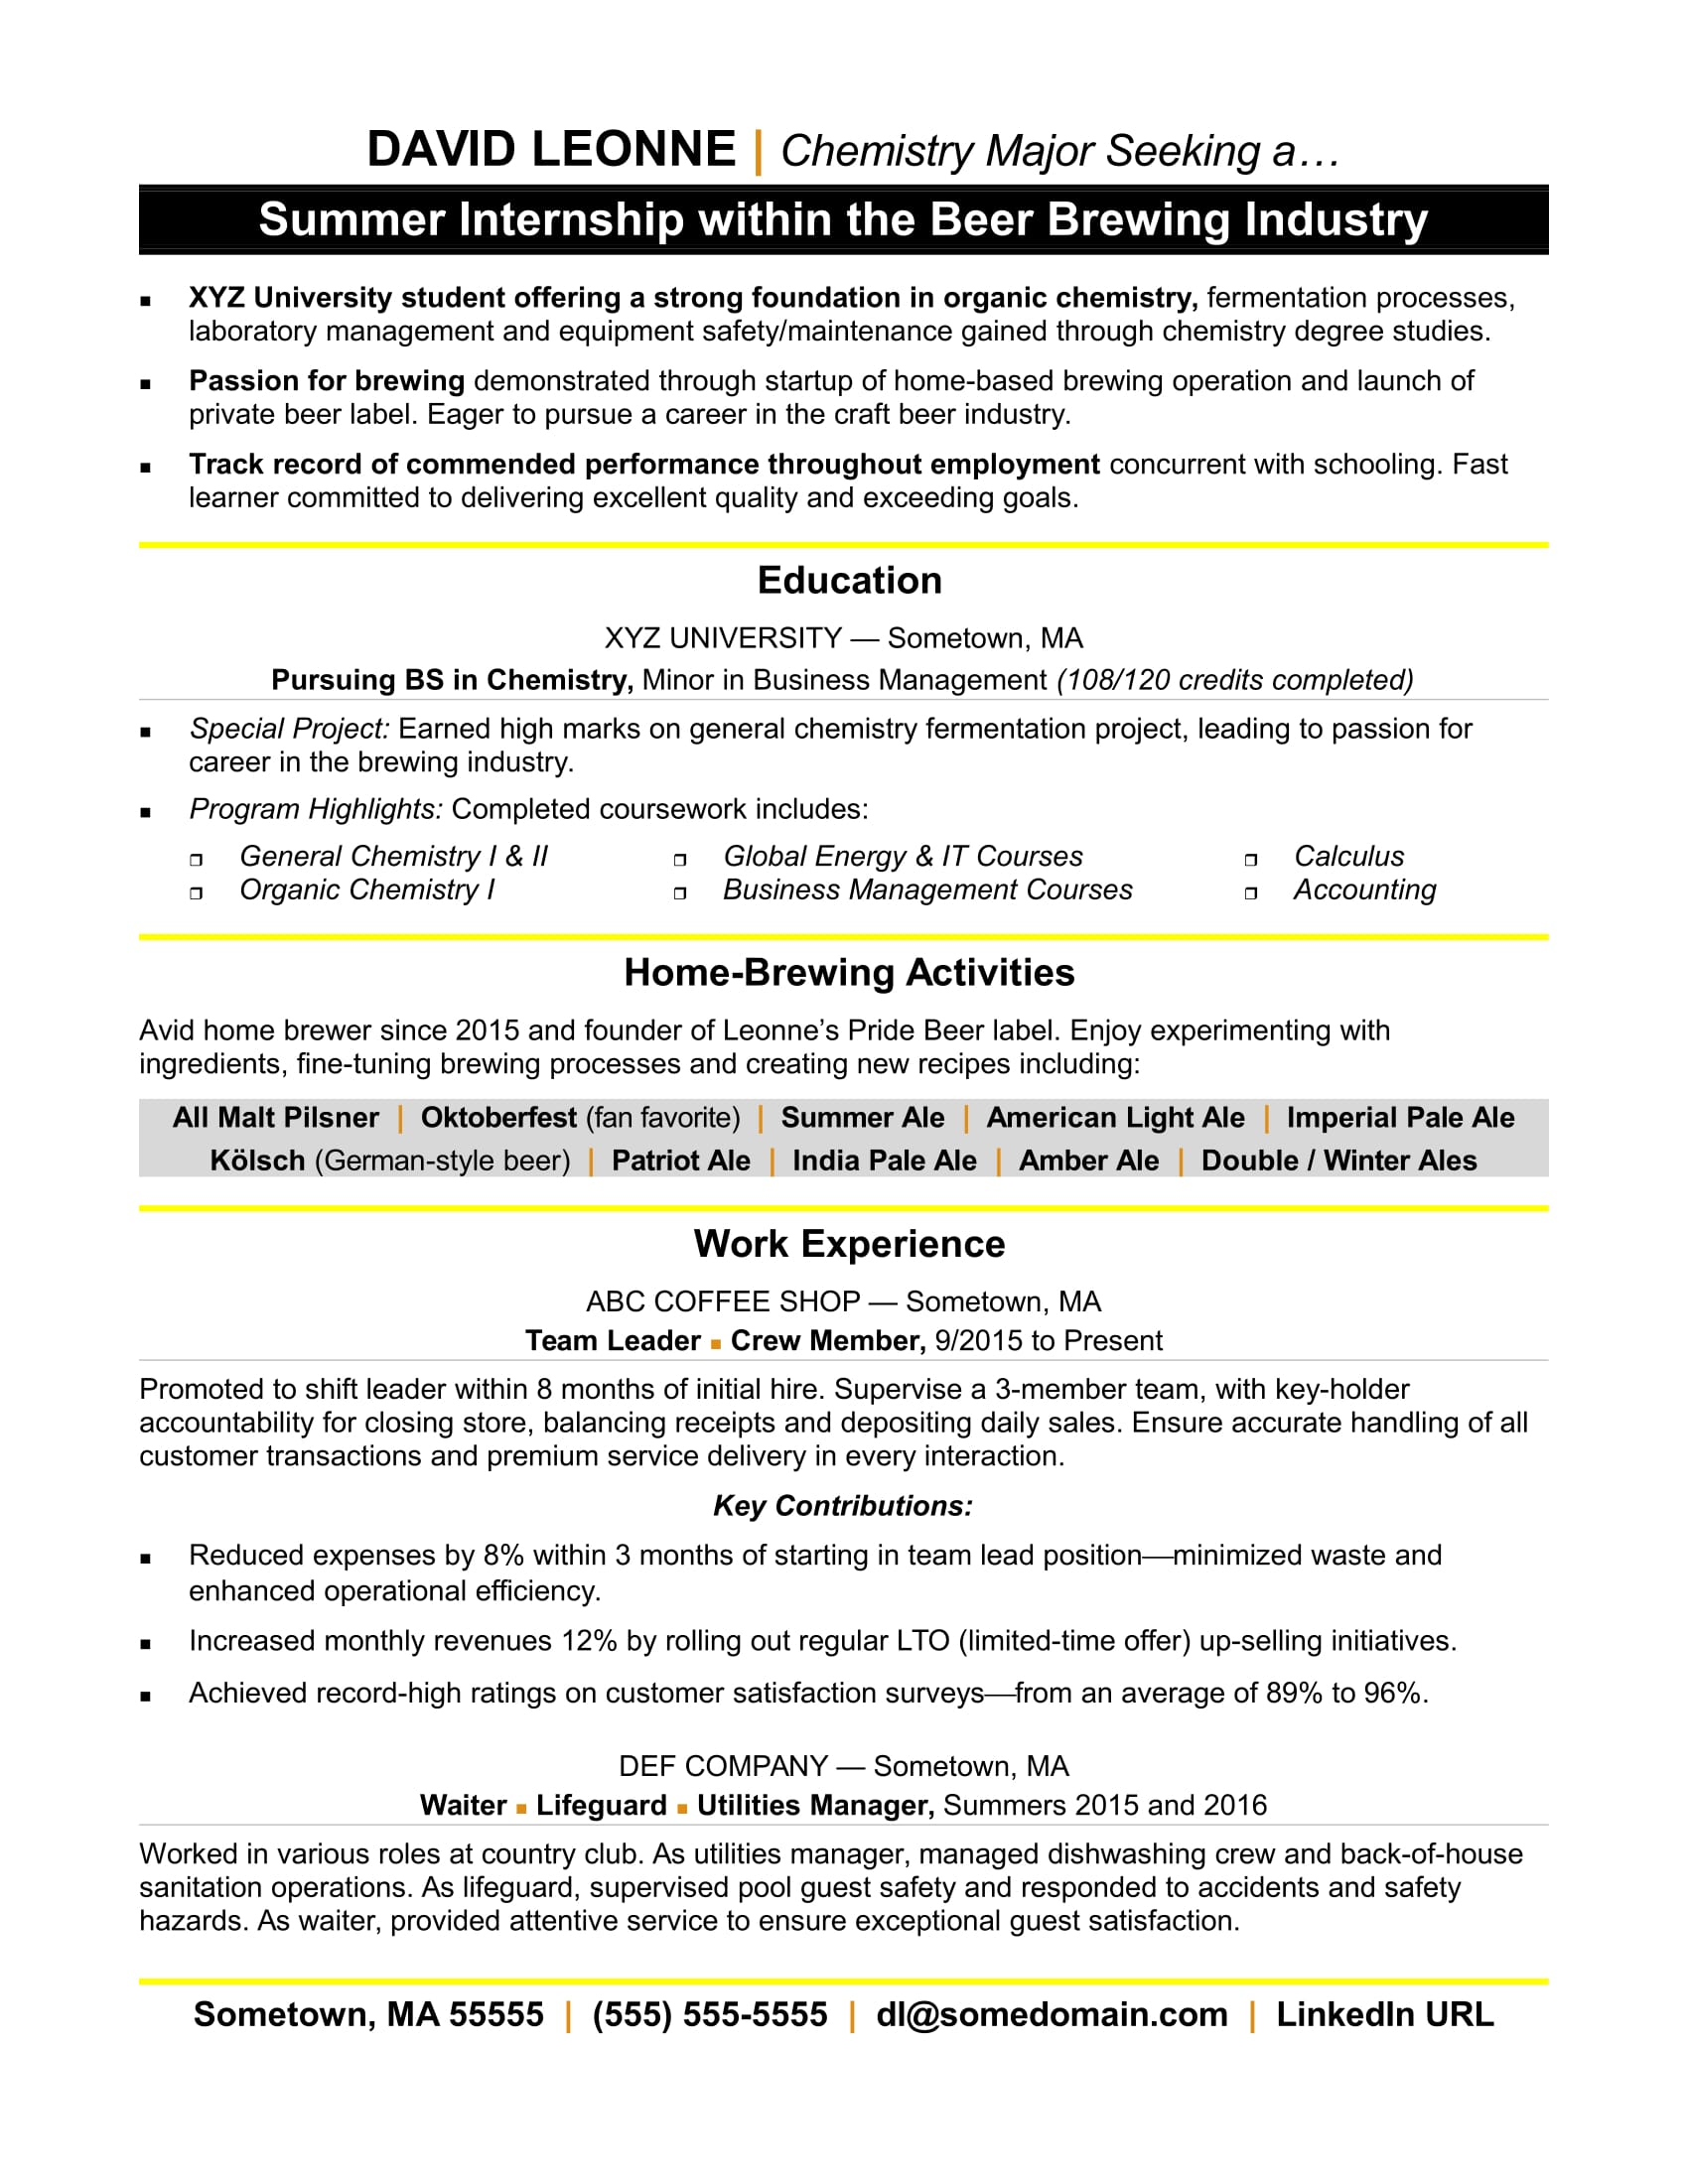 resume format for research internship